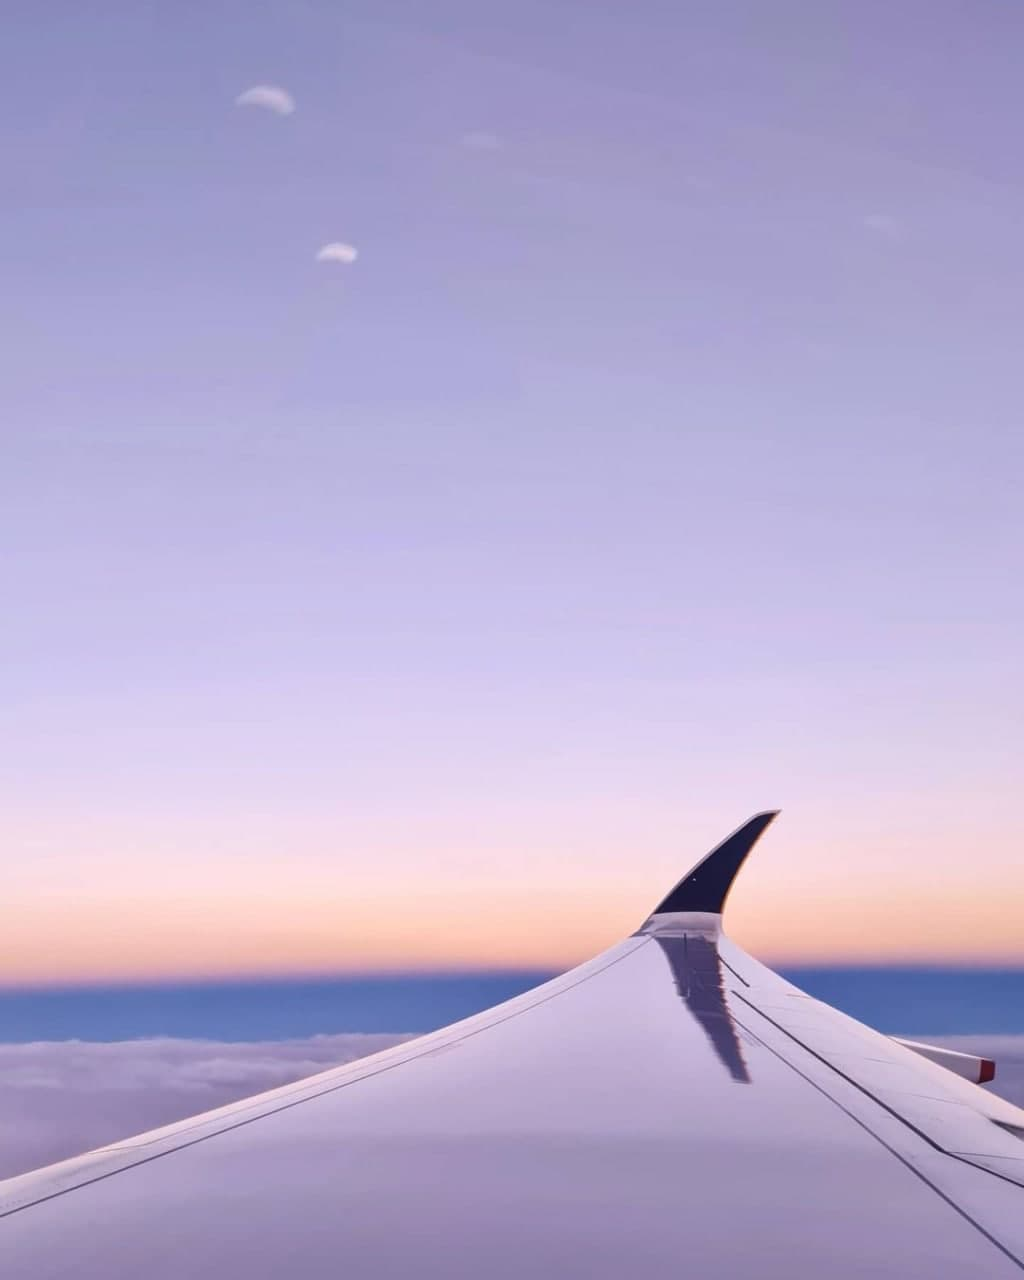 An airplane's wing as seen from the passenger's window